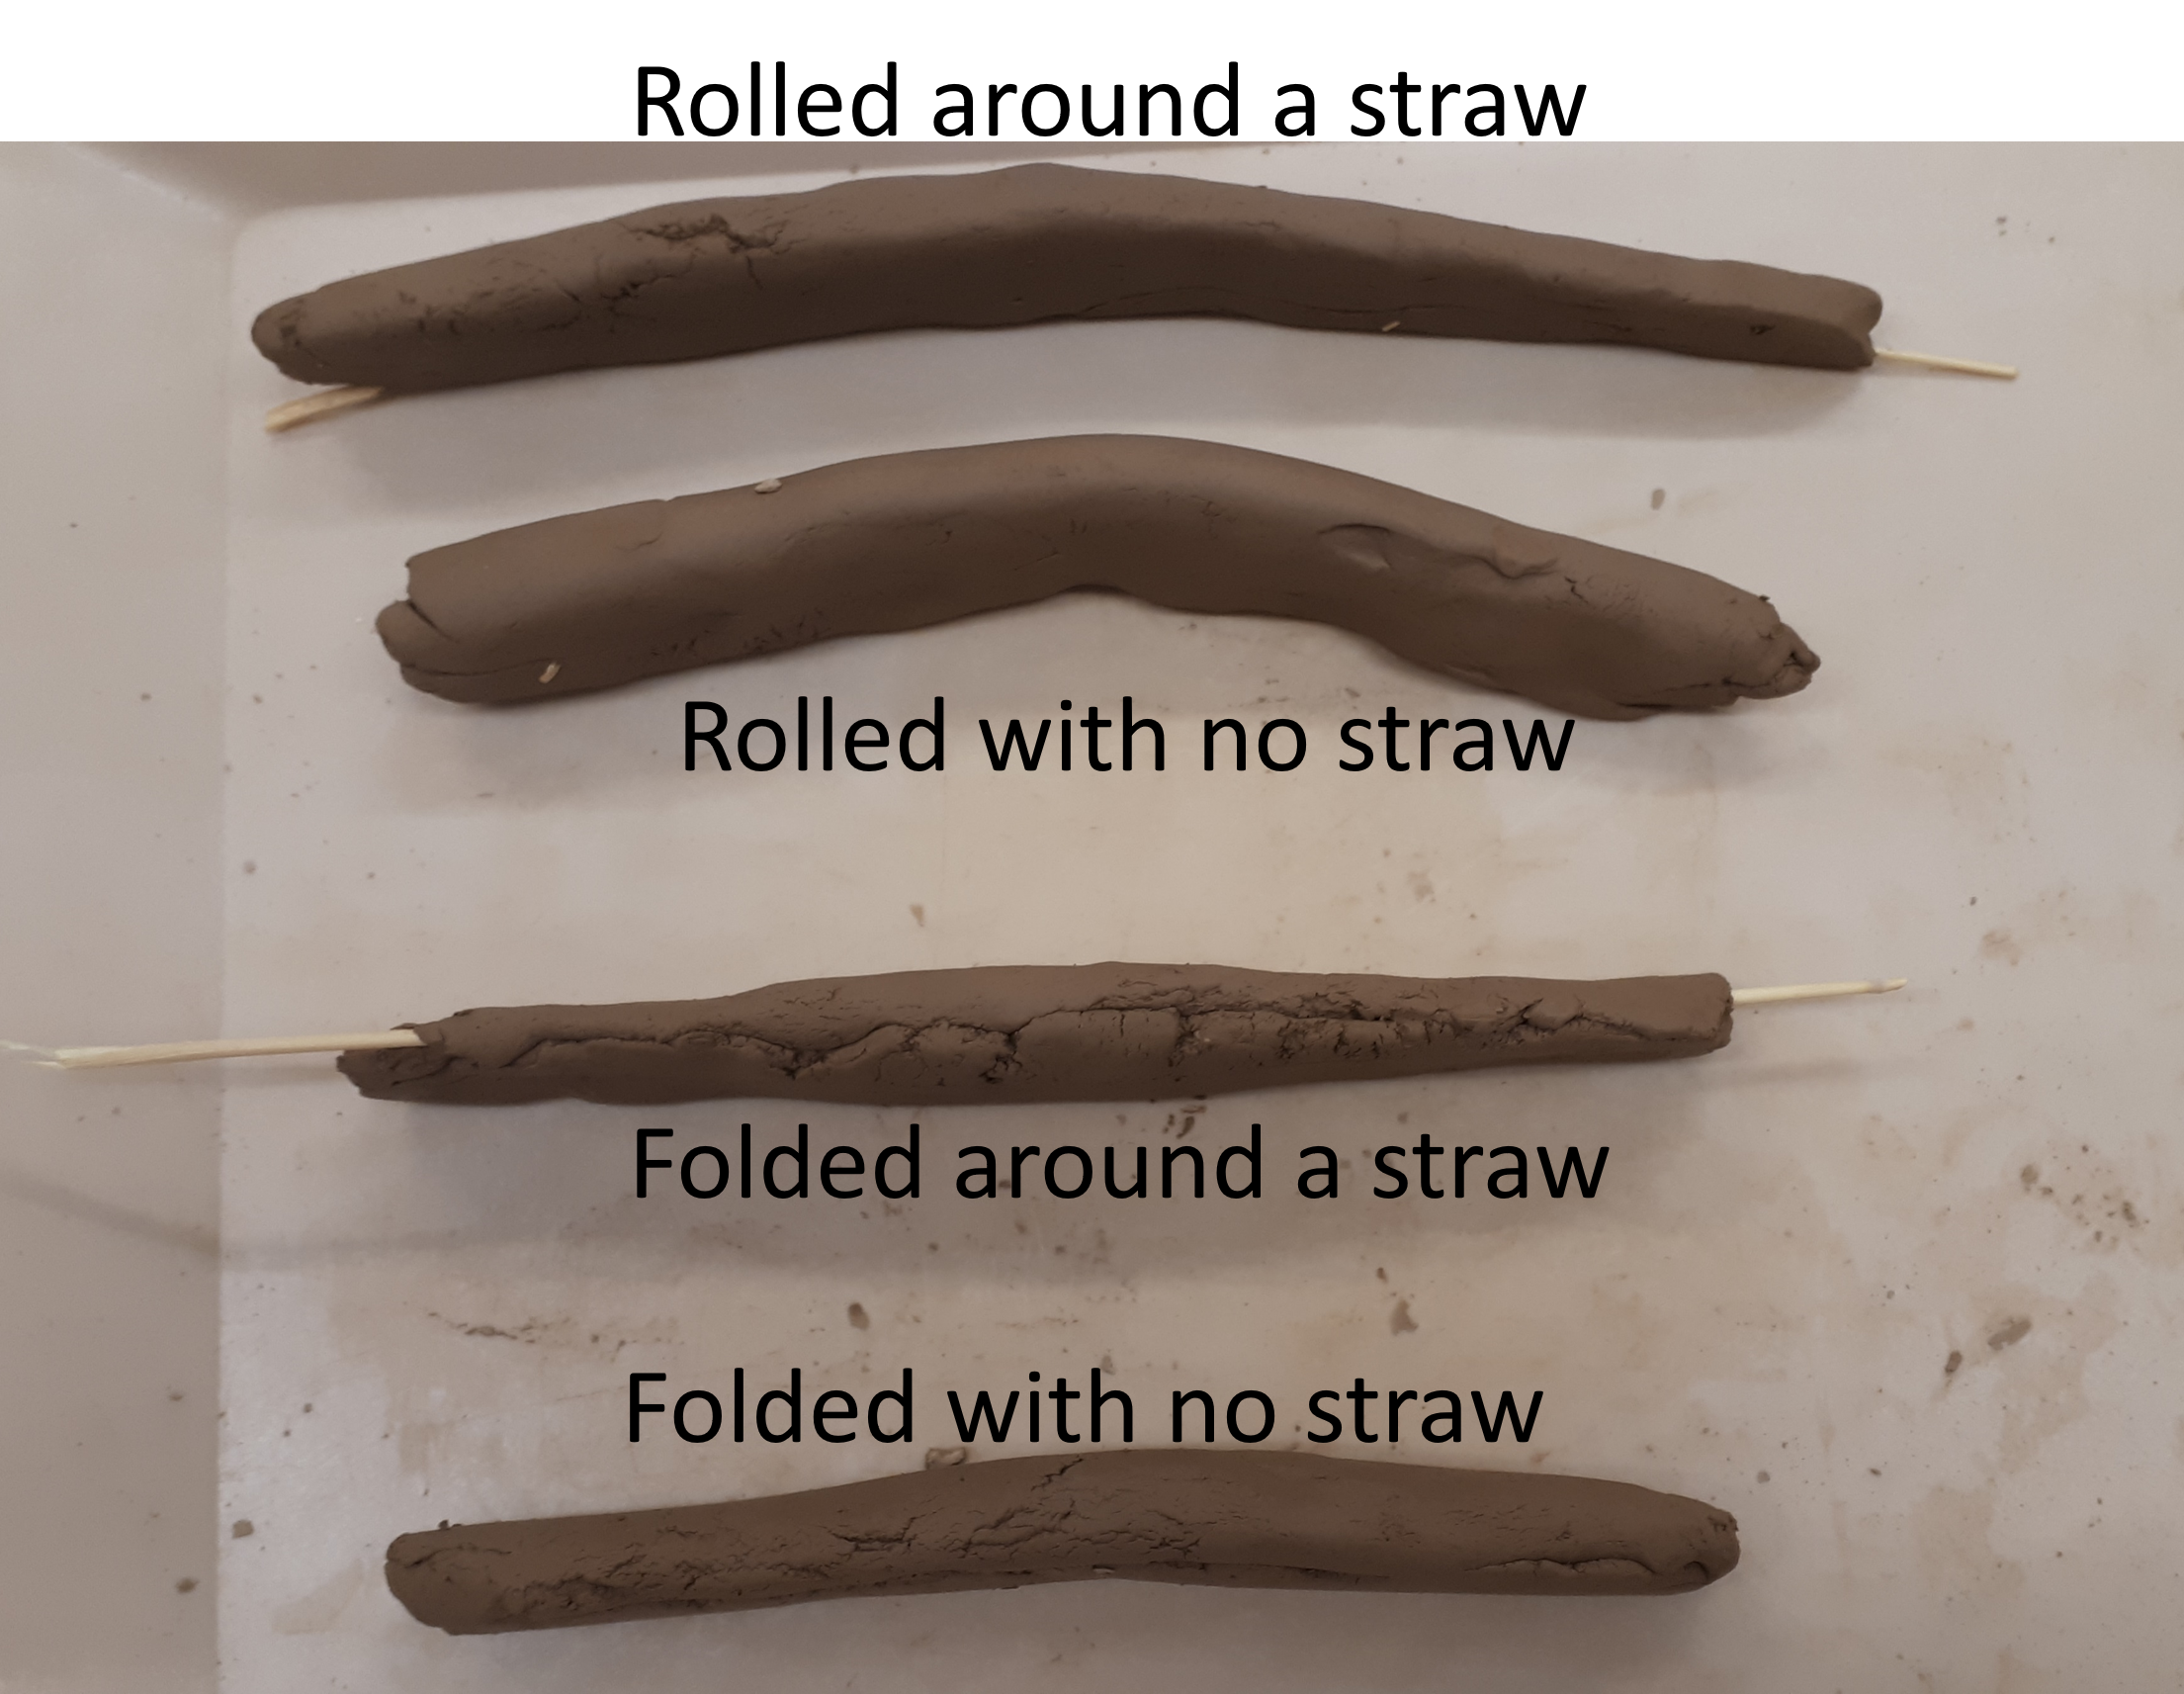 """Four long thin clay tablets positioned upright on their sides. top to bottom: caption """"rolled around a straw"""", tablet slightly bent with straw sticking out both ends. caption """"rolled with no straw"""", very bent tablet. """"folded around a straw"""": almost completely straight tablet with seam visible along uppermost edge, and straw sticking out both ends. """"folded with no straw"""": very slightly bent tablet with seam partly visible on edge"""